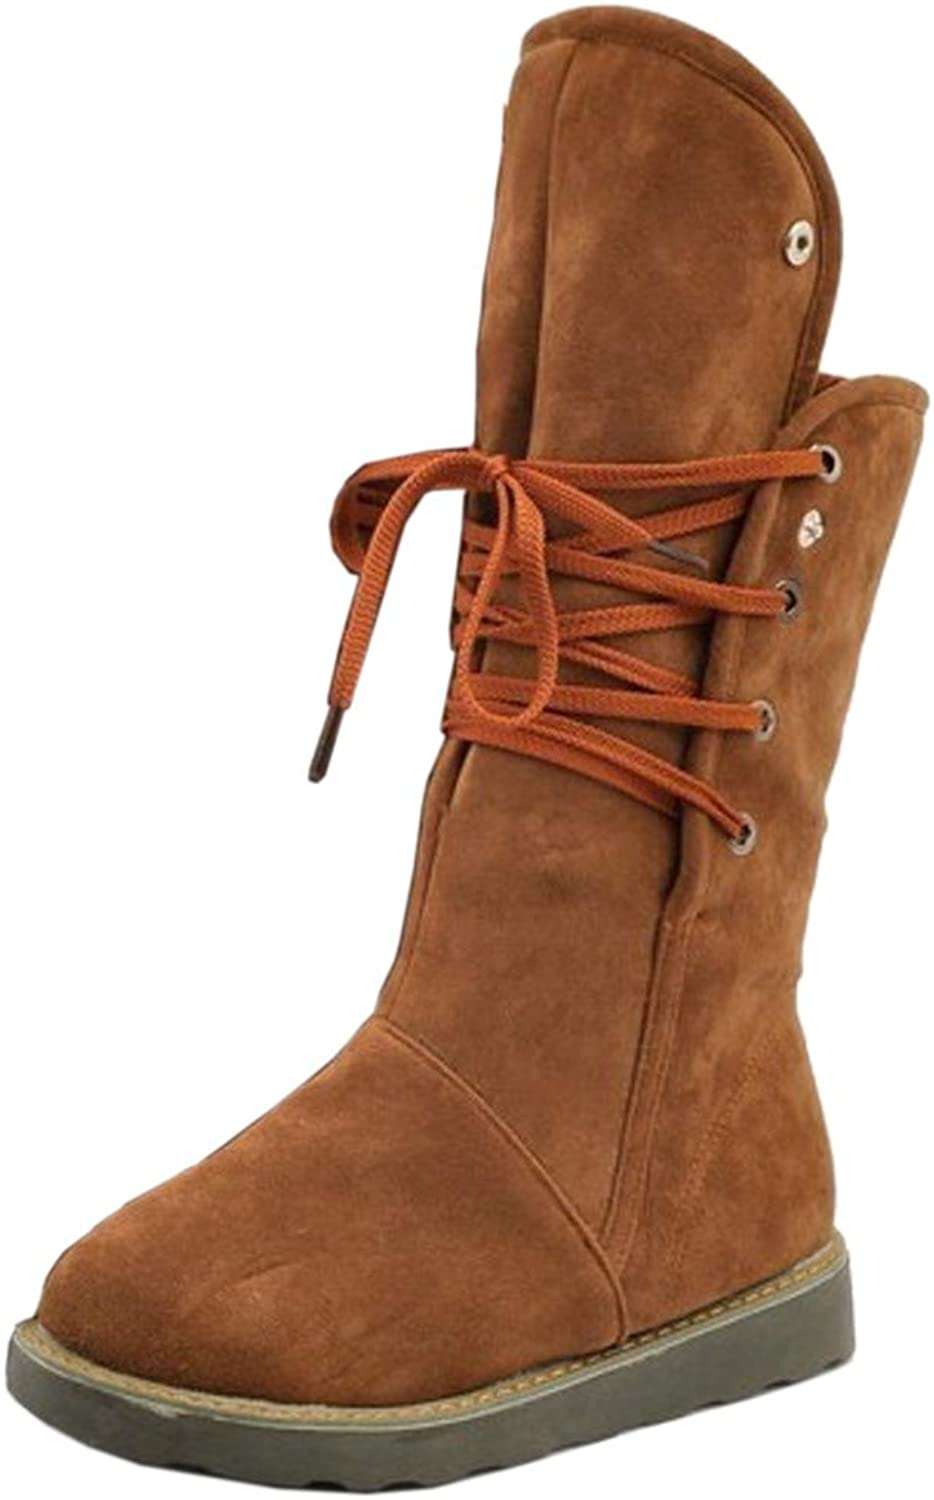 TAOFFEN Women's Boots Lace Up Warm Lining